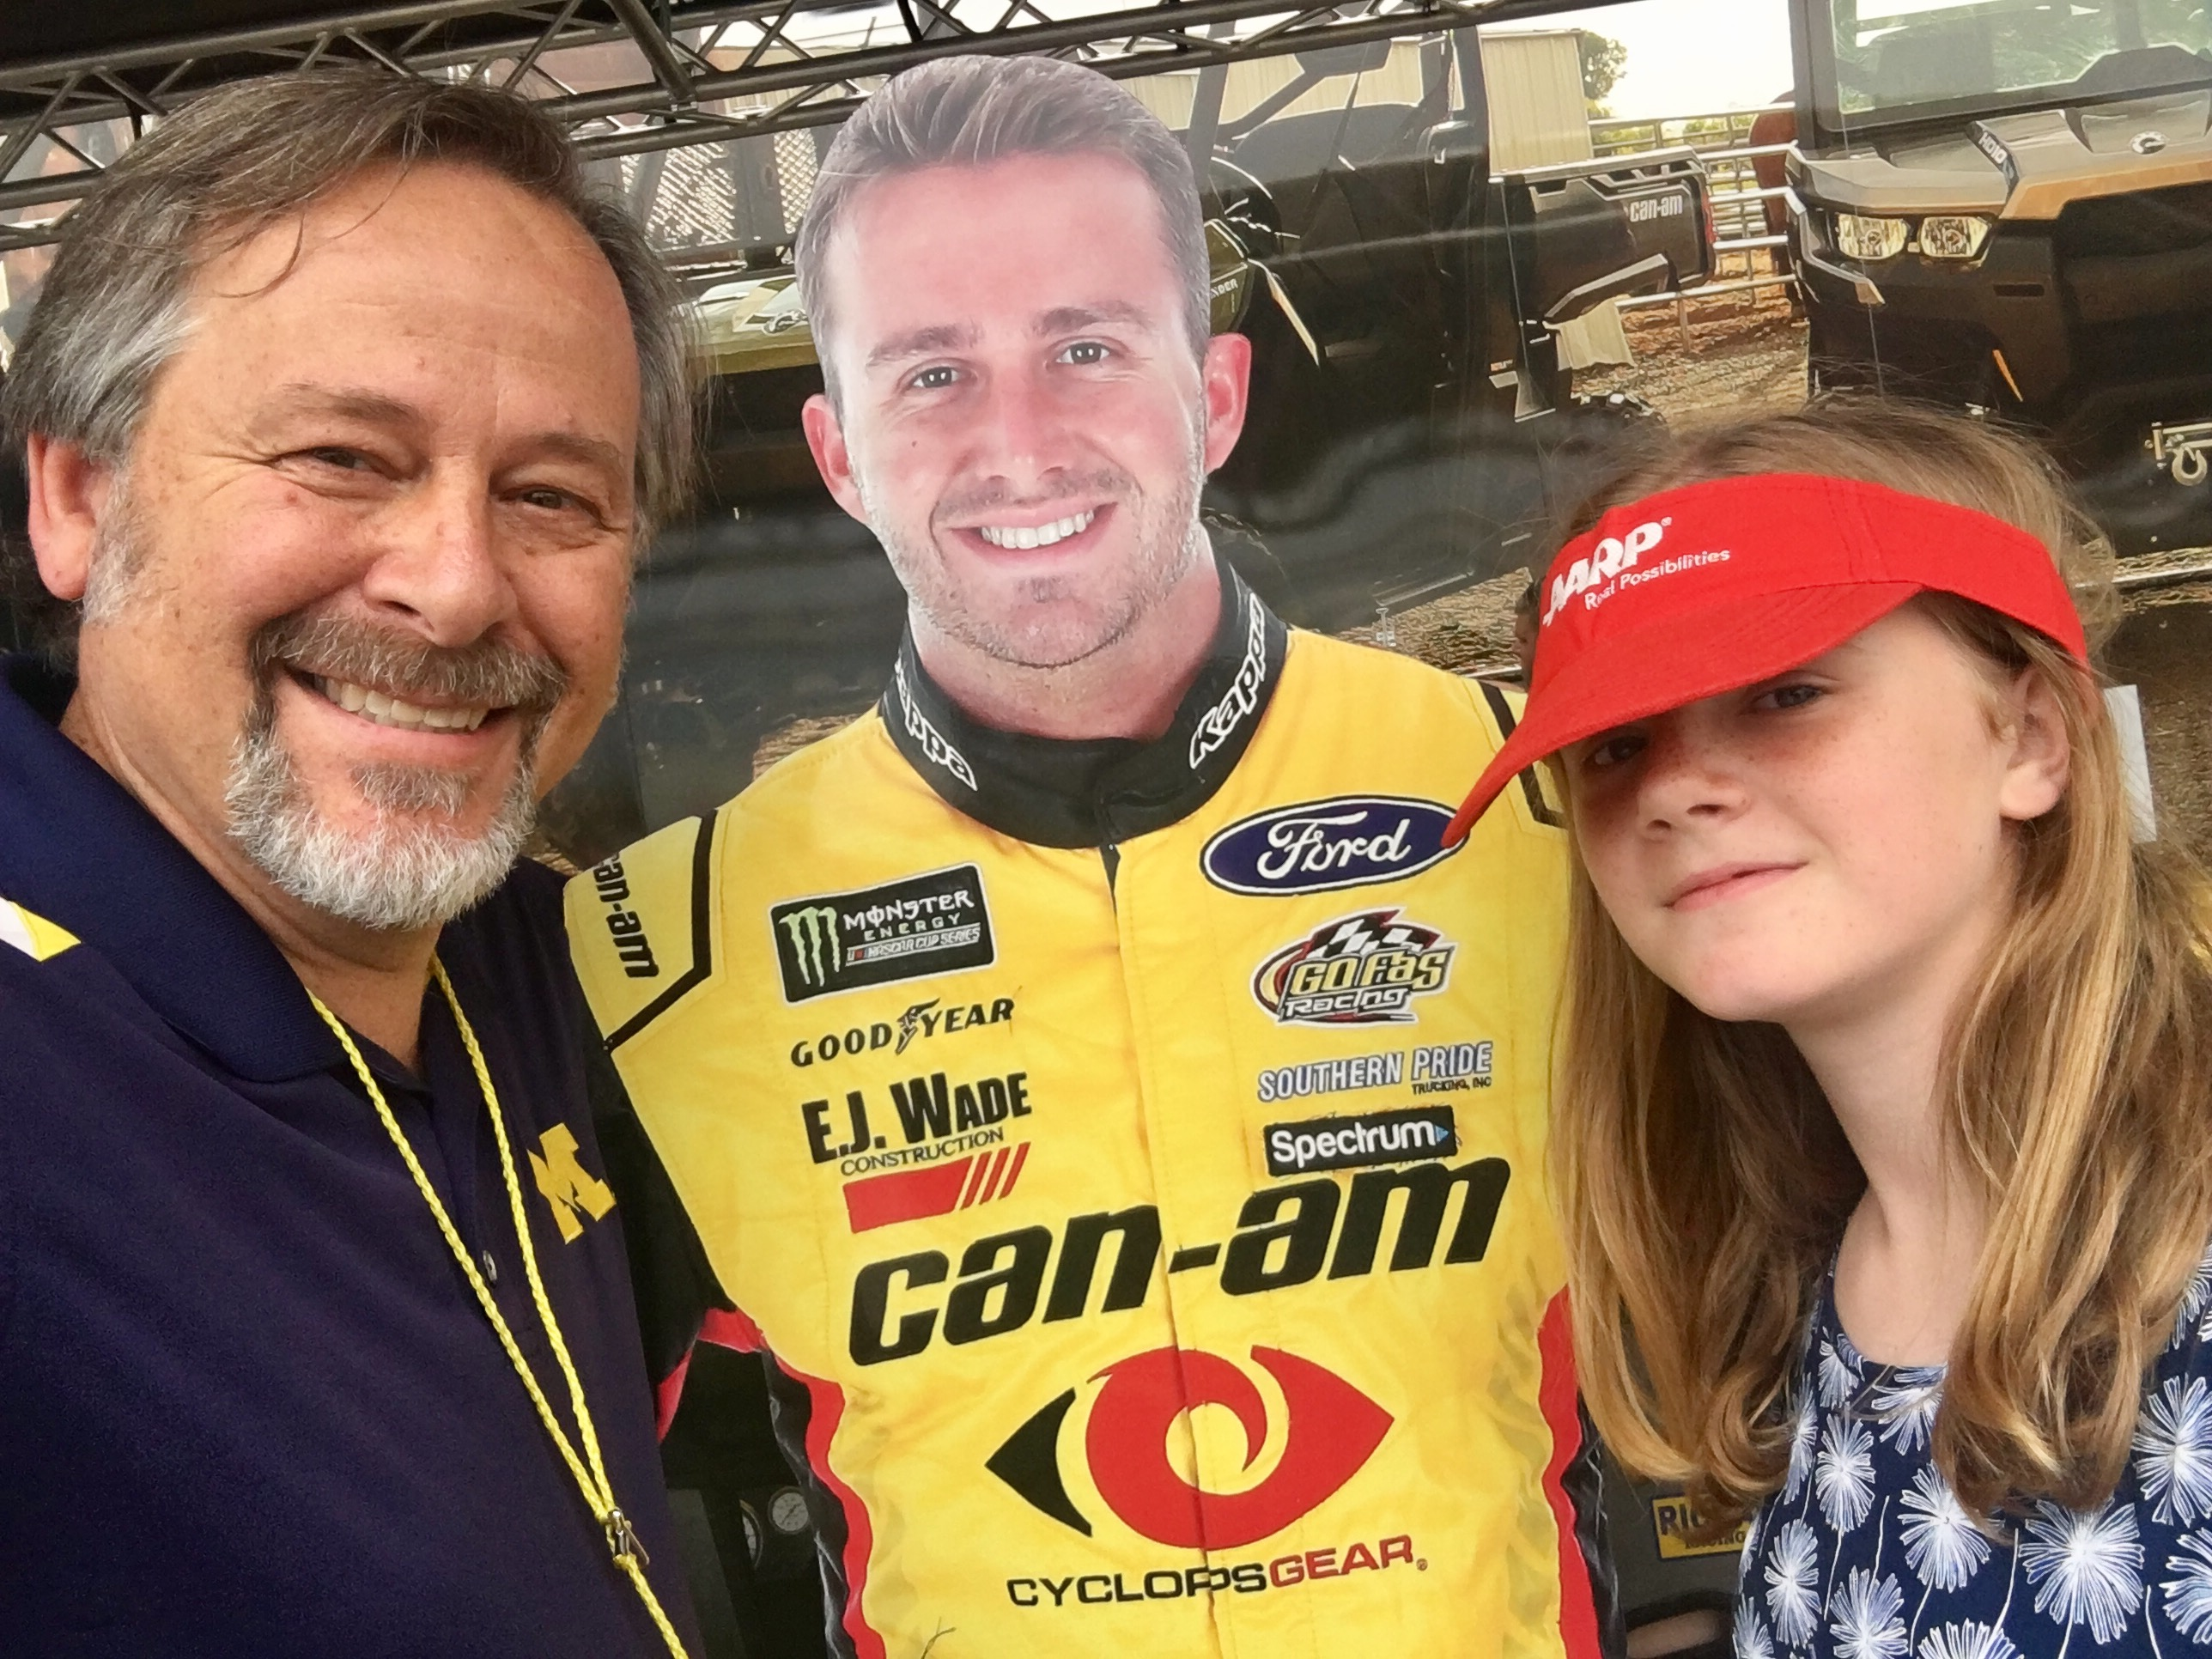 Man and girl with a red hat posing with cutout of nascar driver in yellow sponsor uniform